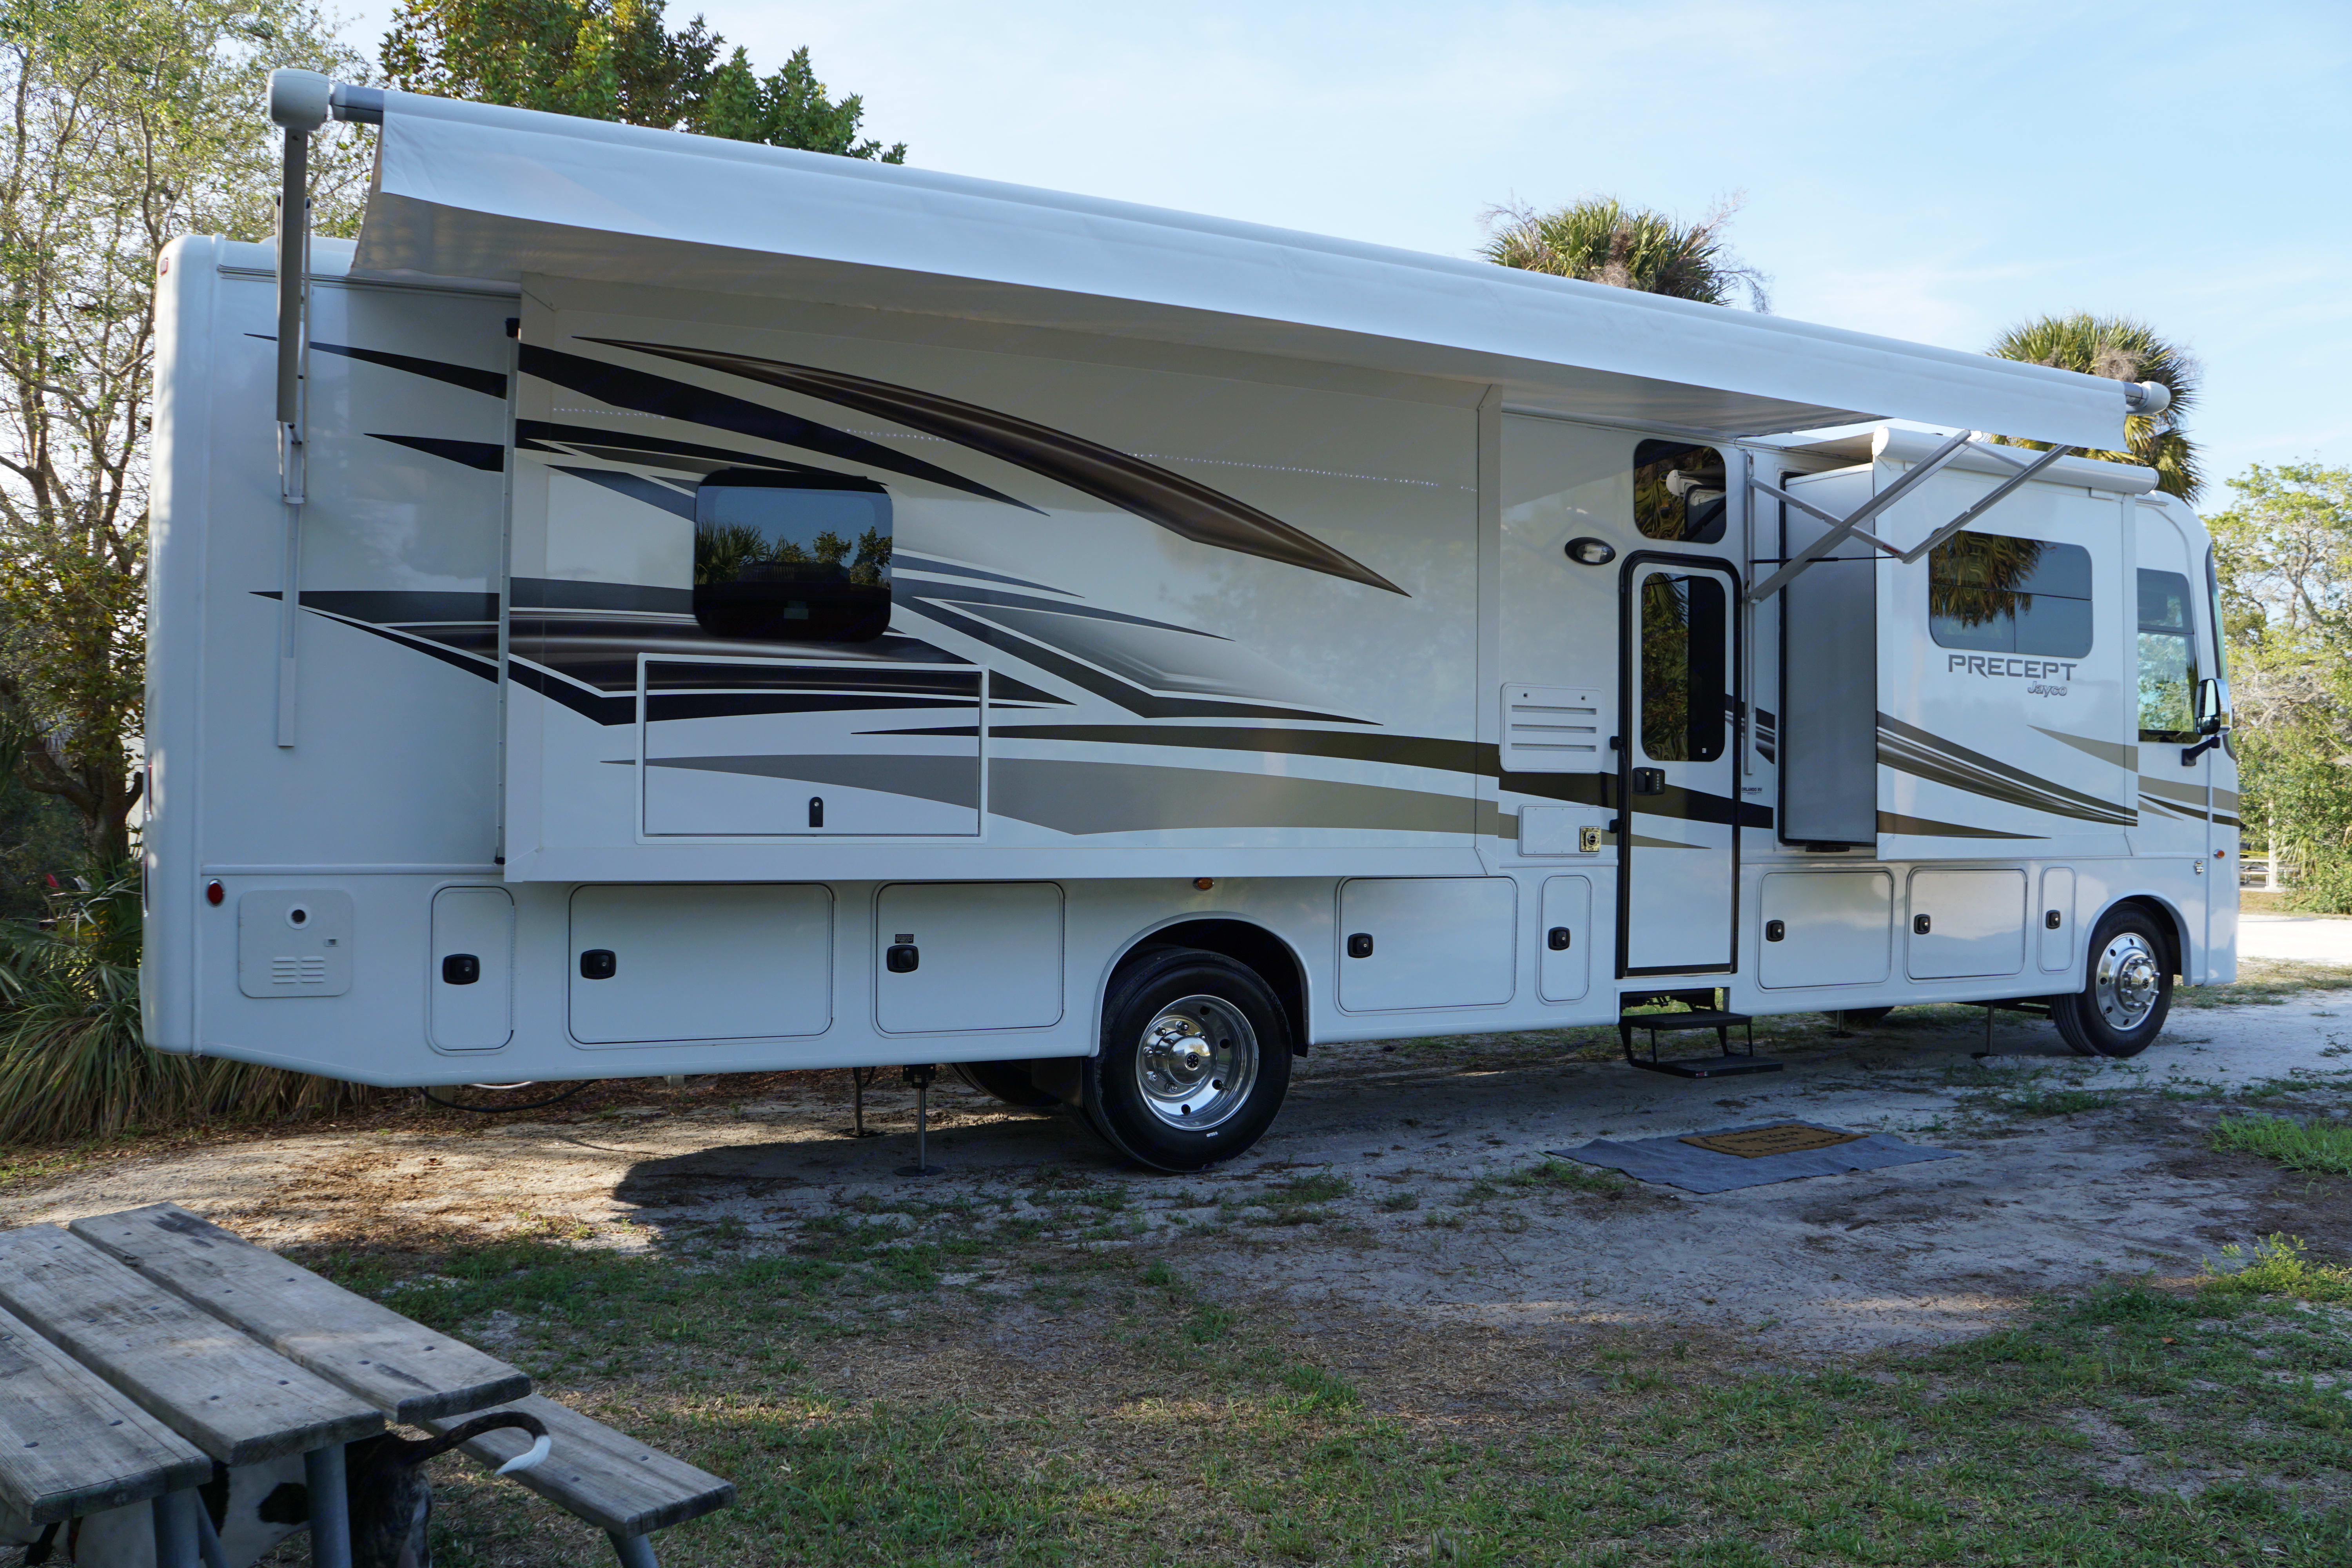 Side view with slides and awning extended. Jayco Precept 2017